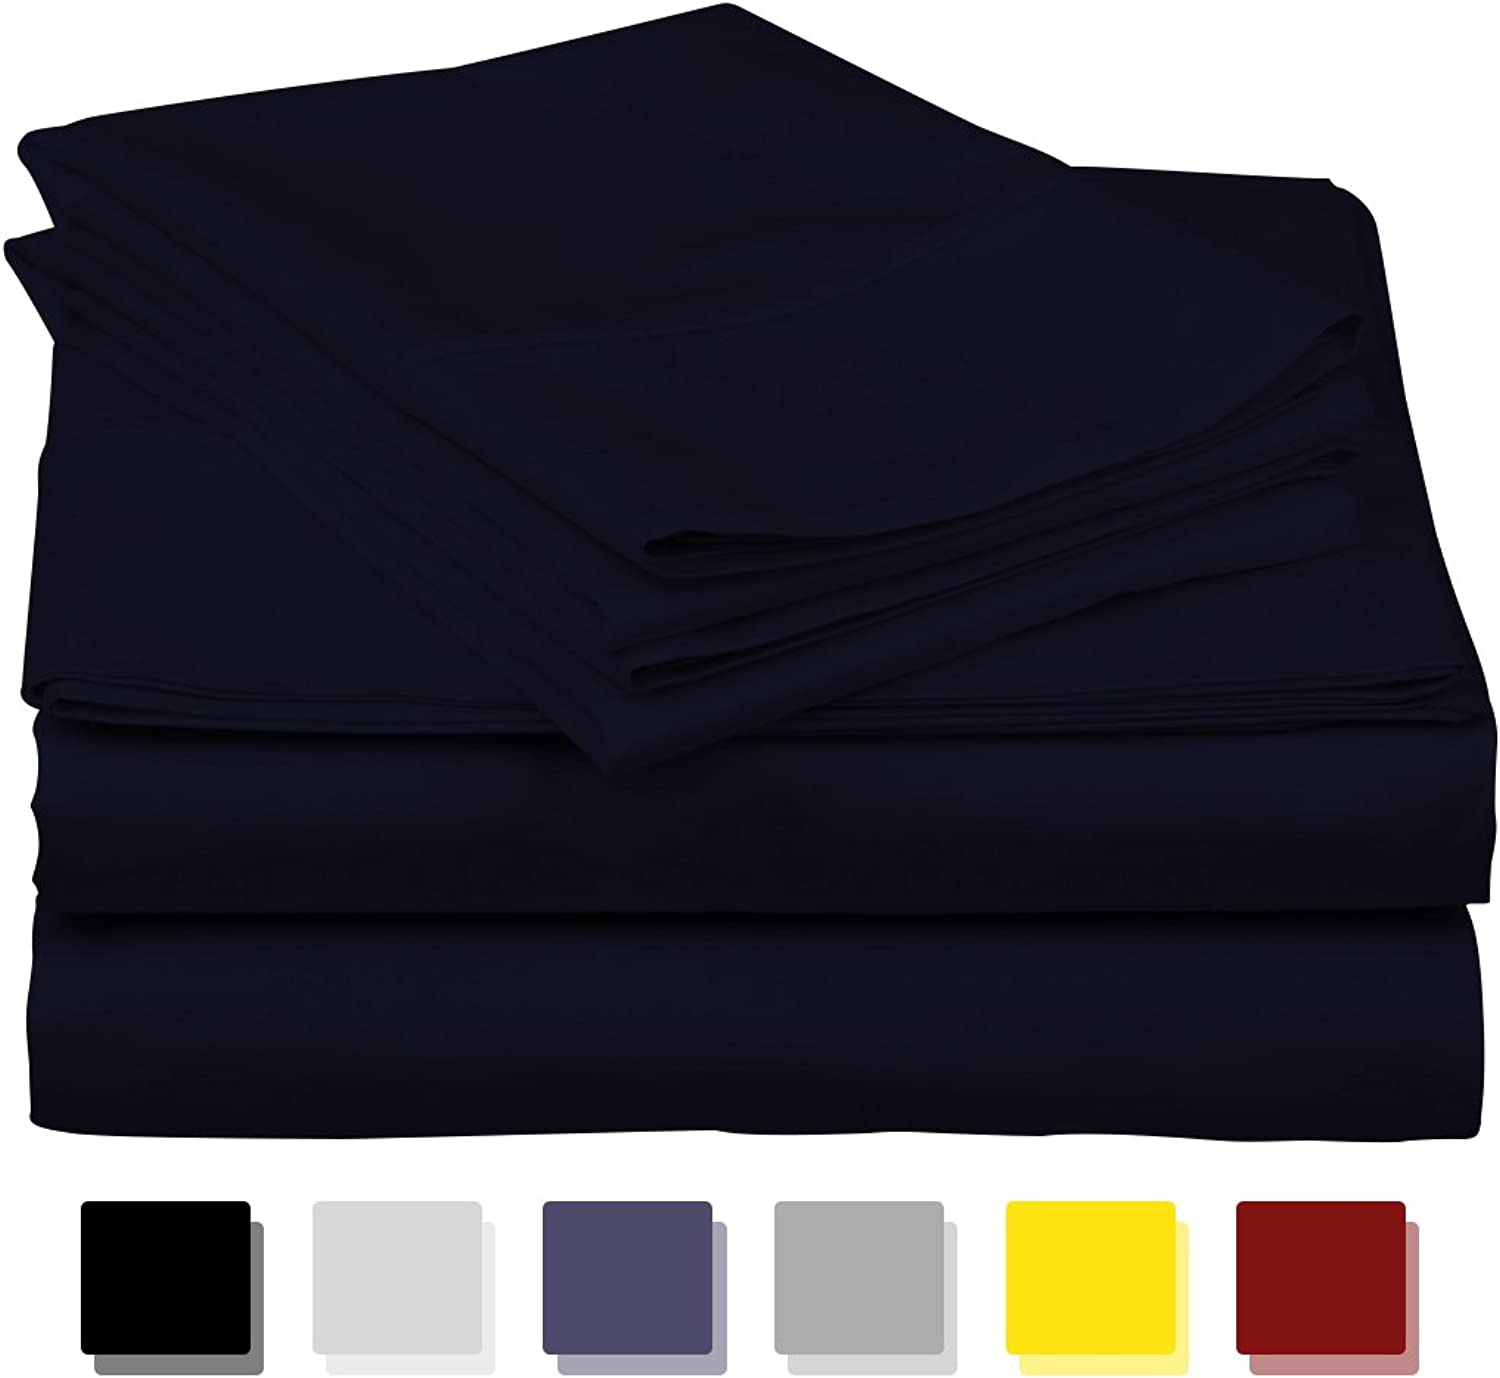 600-Thread-Count Best 100% Egyptian Cotton Sheets & Pillowcases Set - 4 Pc Navy bluee Long-Staple Cotton Bedding Queen Sheet for Bed, Fits Mattress Upto 18'' Deep Pocket, Soft & Silky Sateen Weave